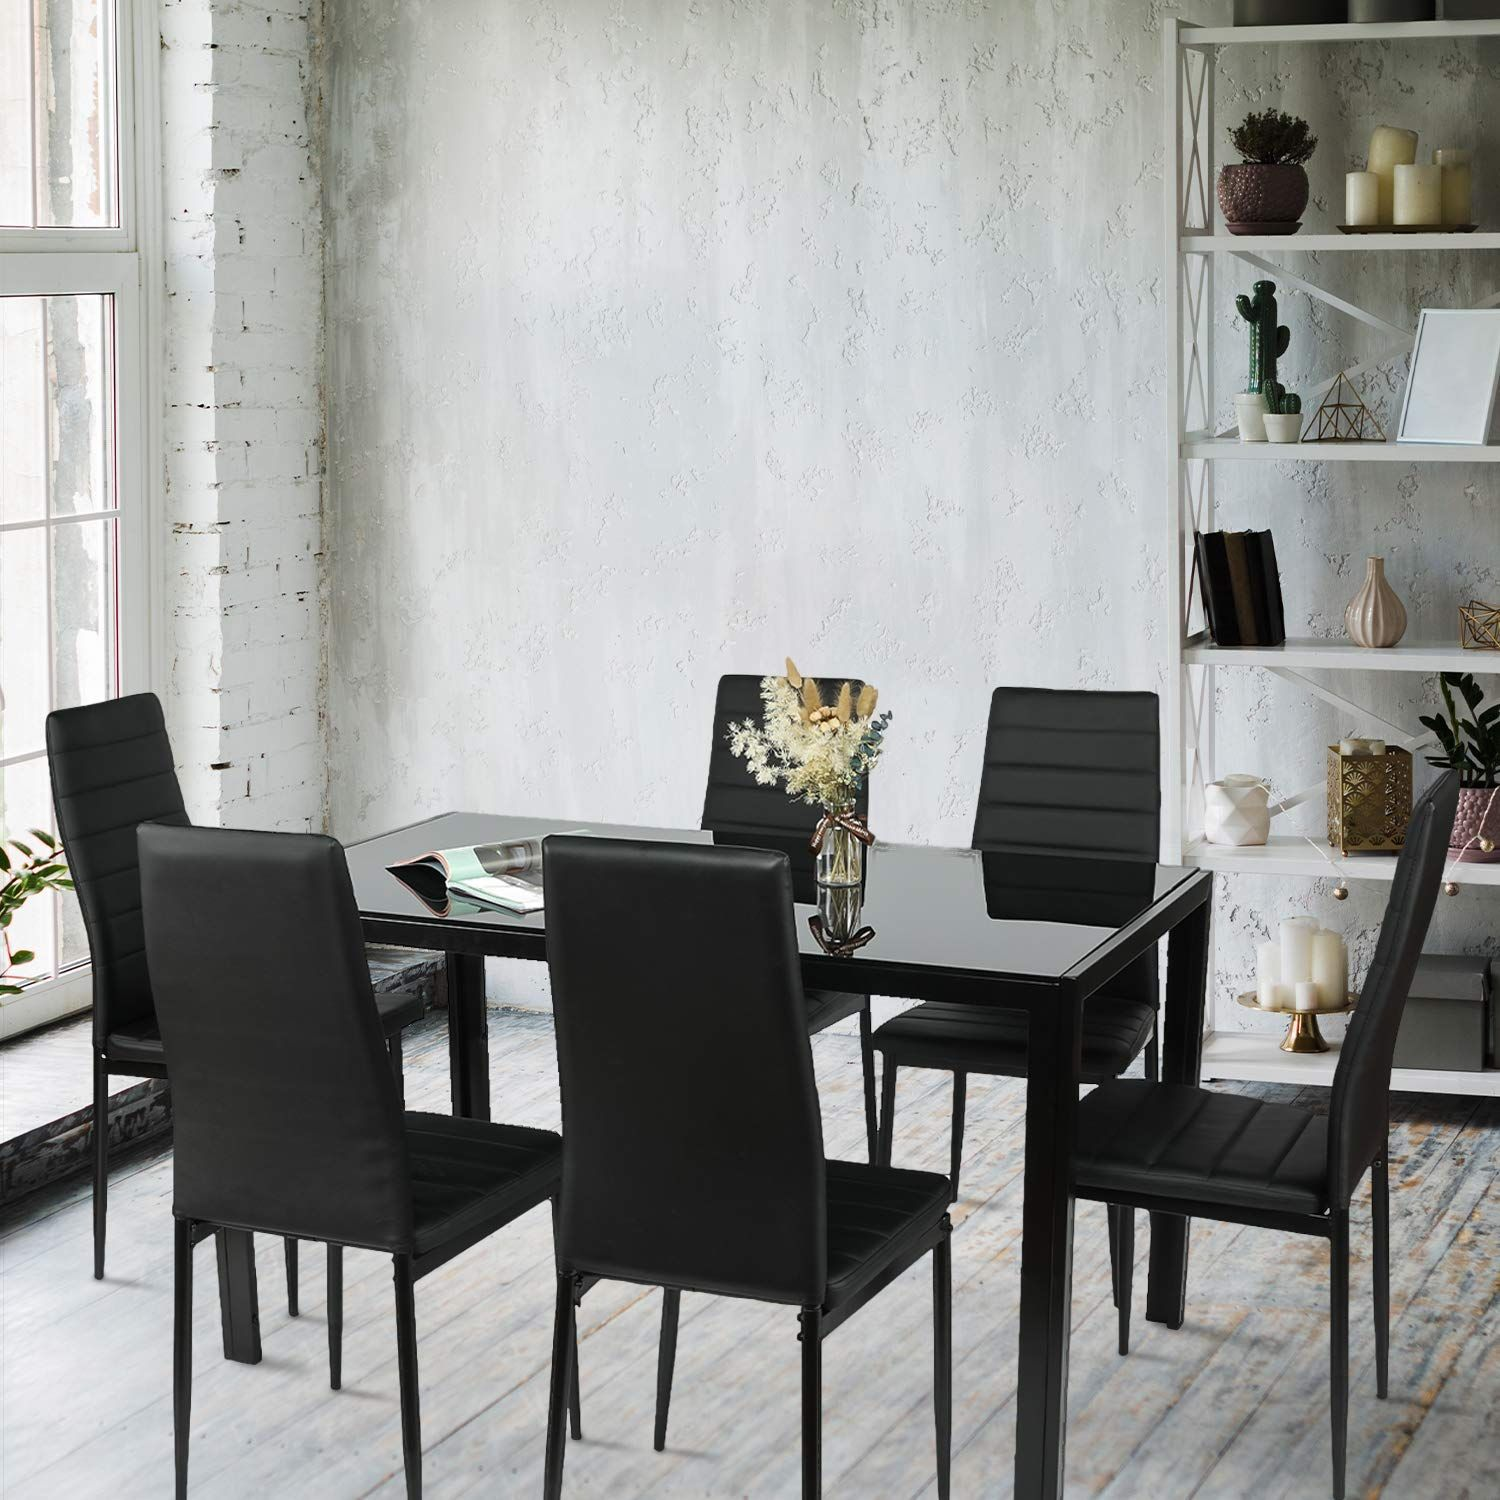 Bahom 7 Piece Kitchen Dining Table Set For 6 Read More At The Image Link It Is An Affiliate Link To Amazon Dining Table In Kitchen Dining Table Dining